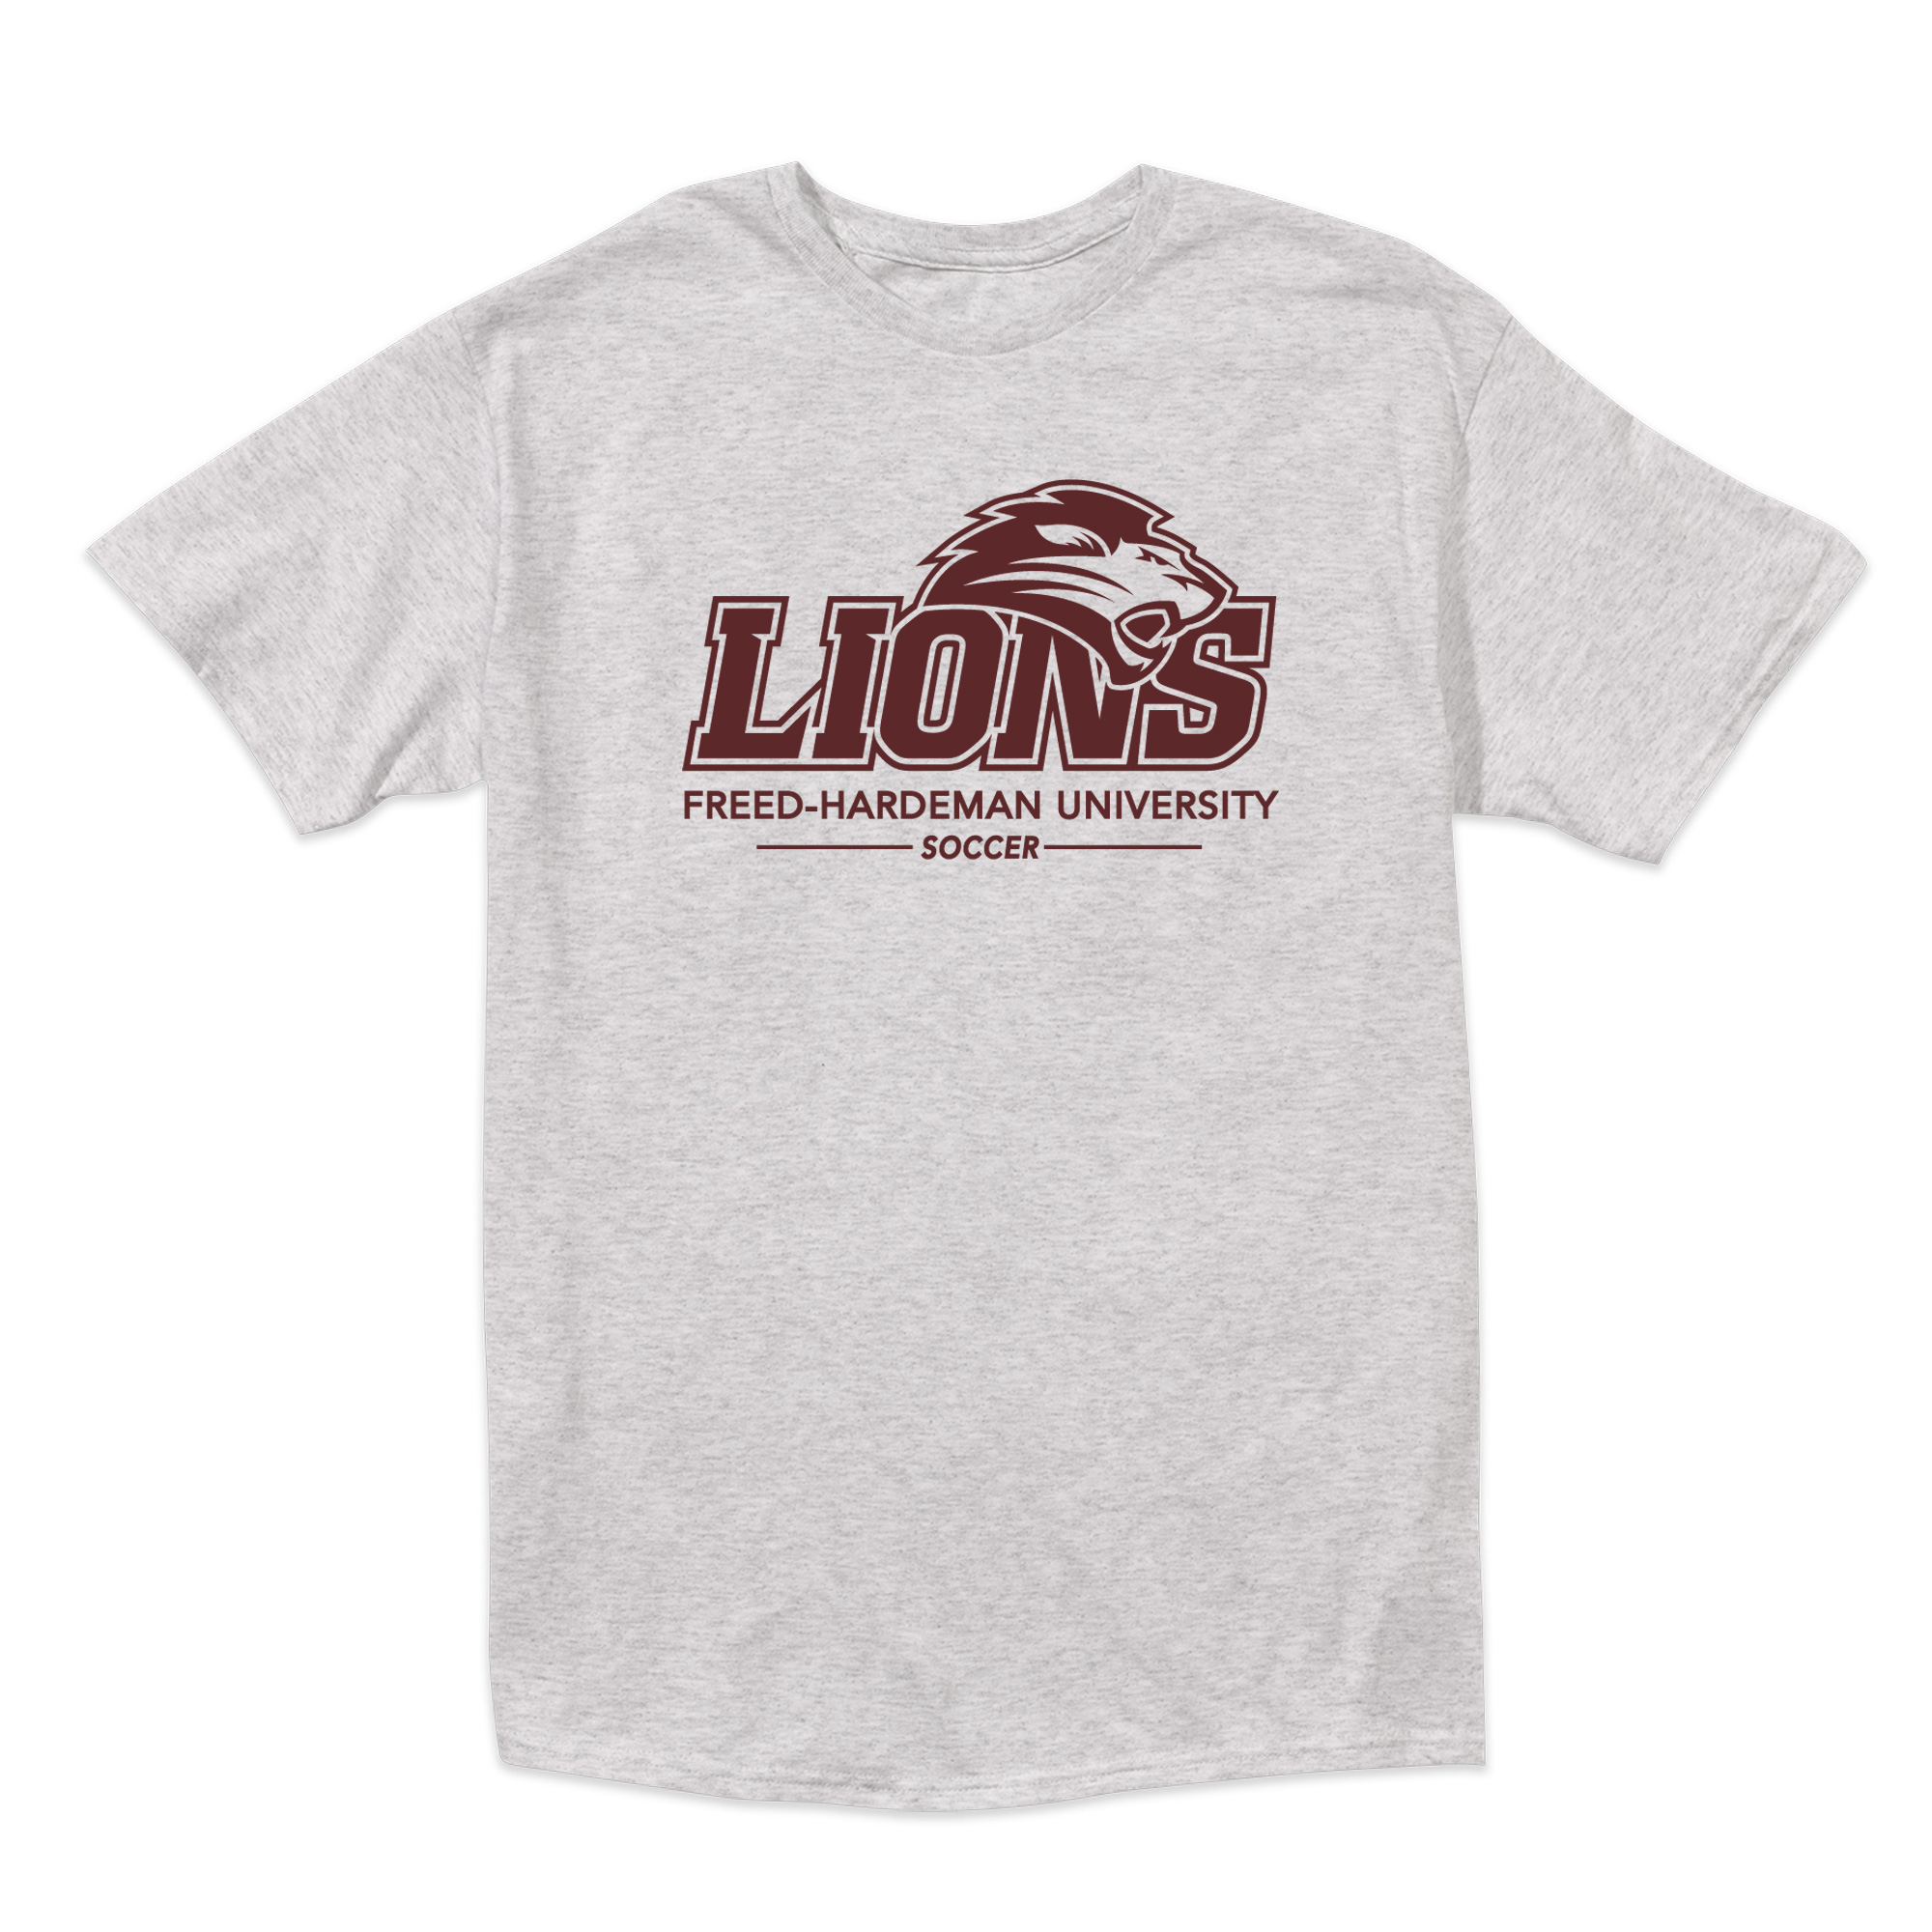 Lions Soccer Tee